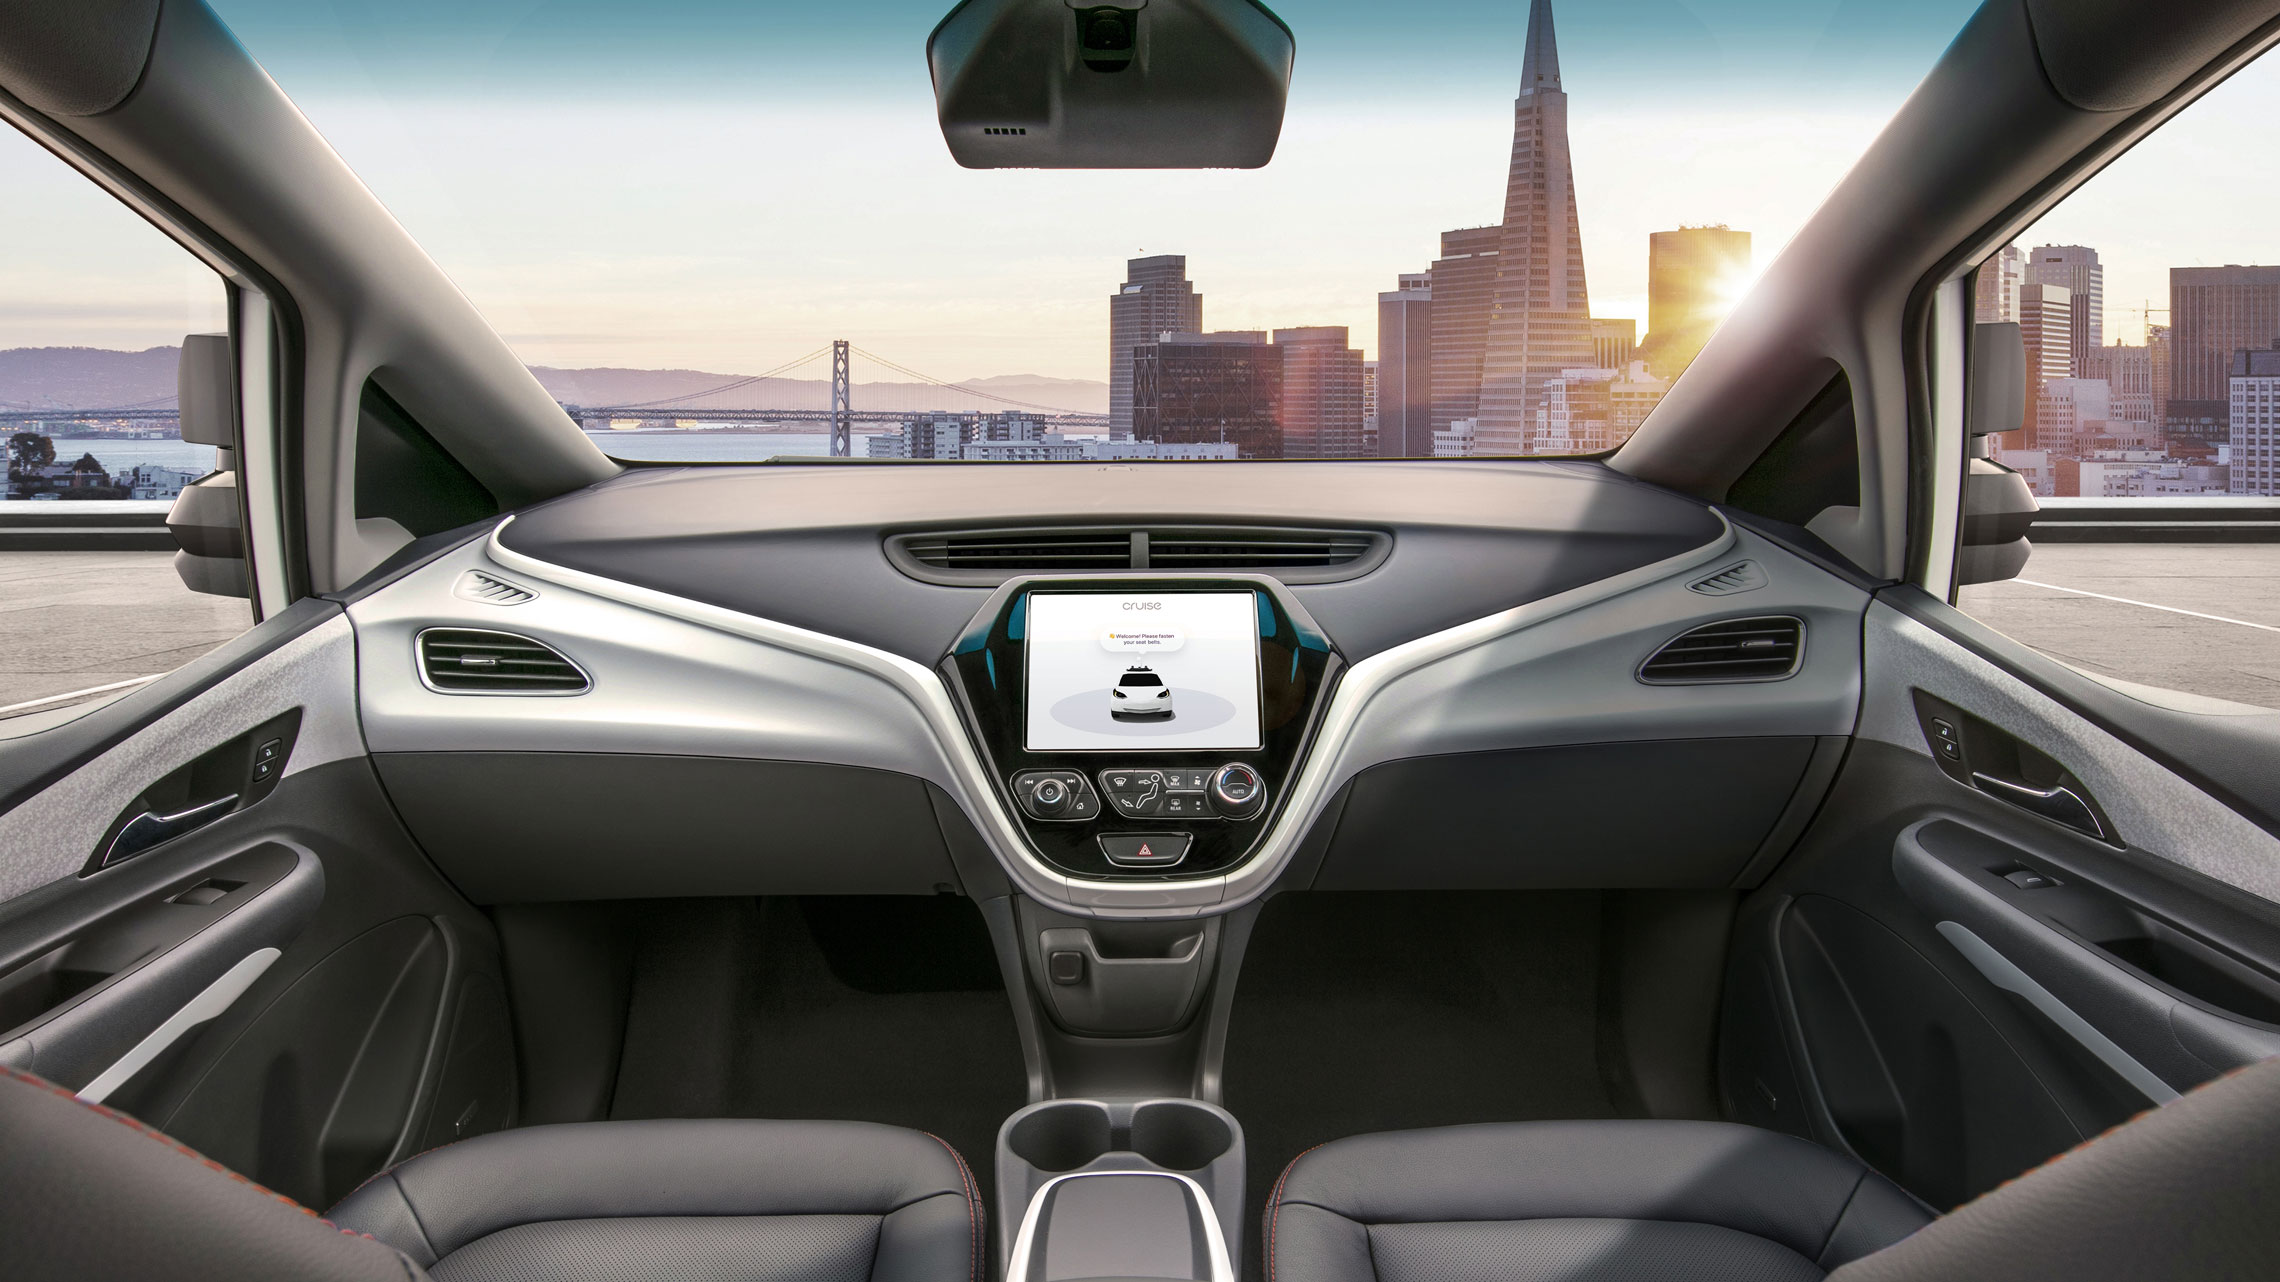 gm-waymo-selfdriving-car